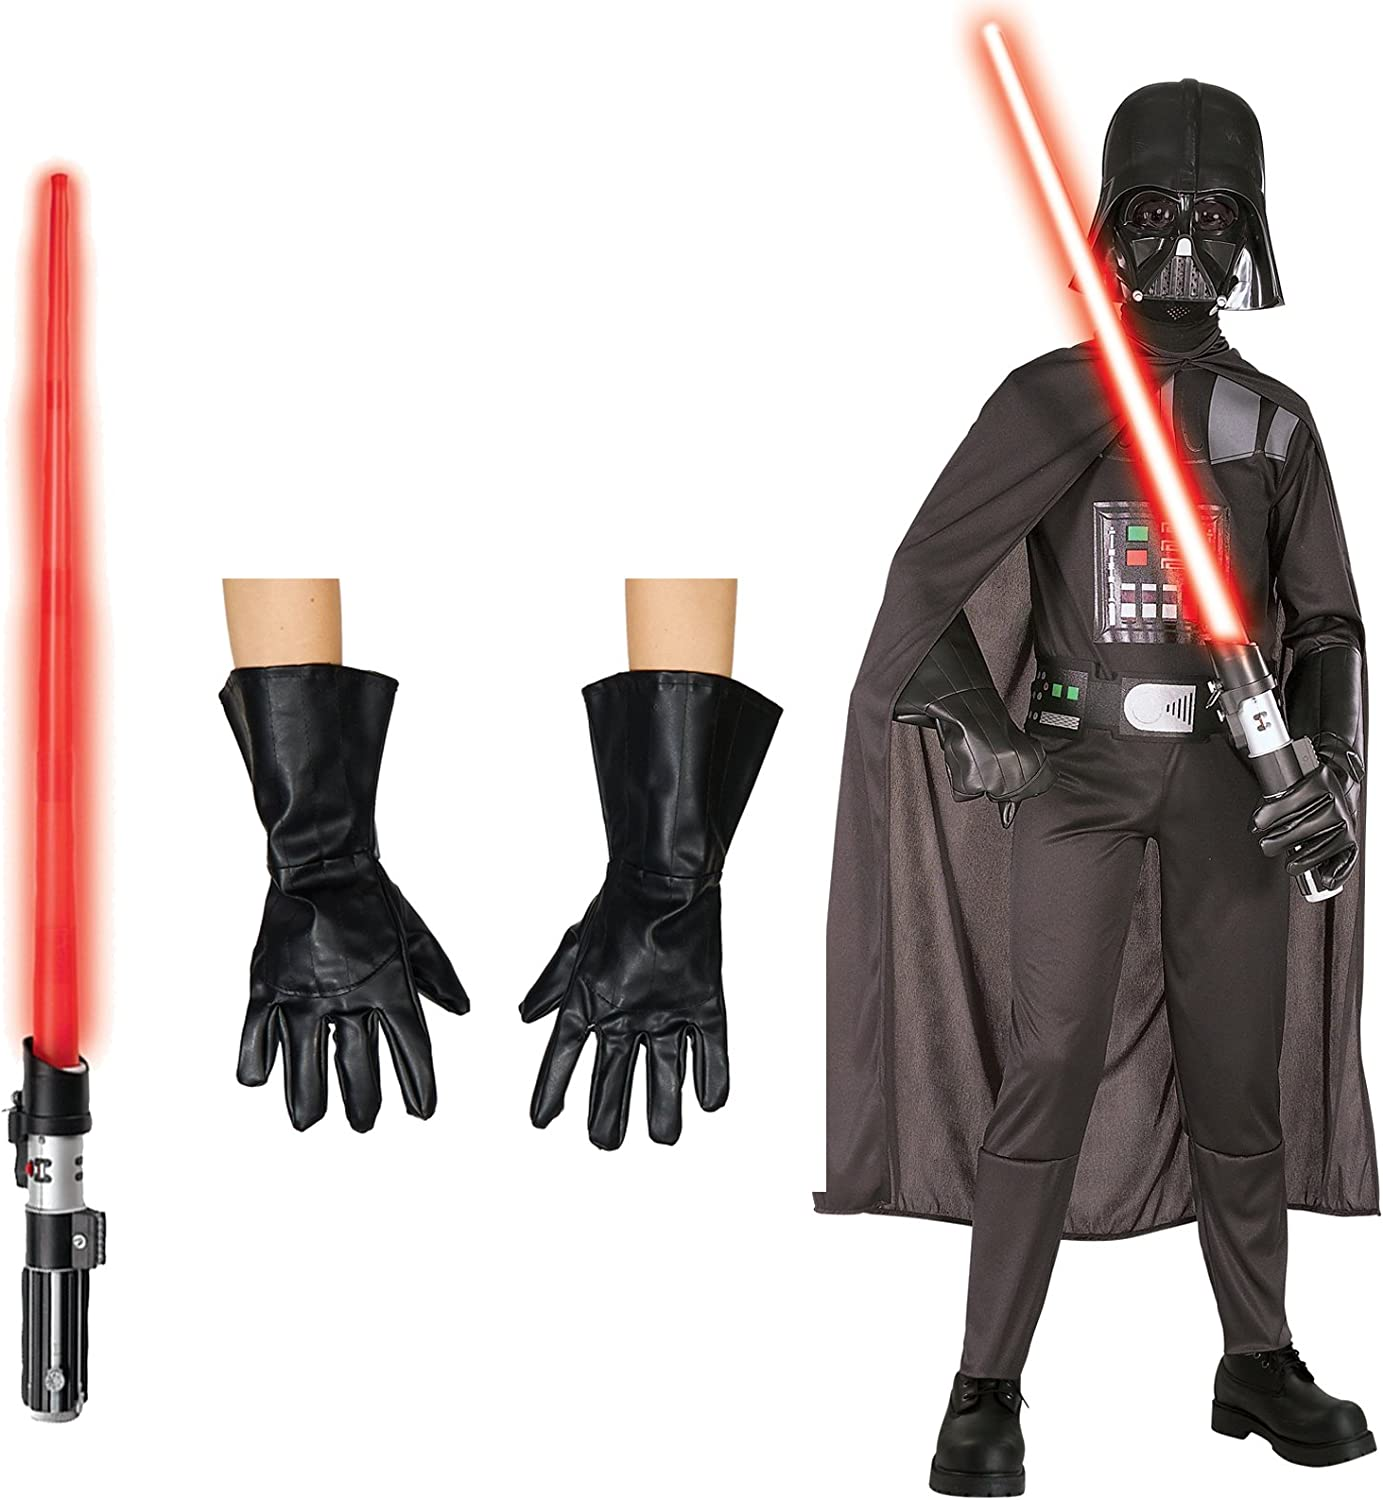 Star Wars Darth Vader costume Bundle – Disfraz de niño pequeño ...